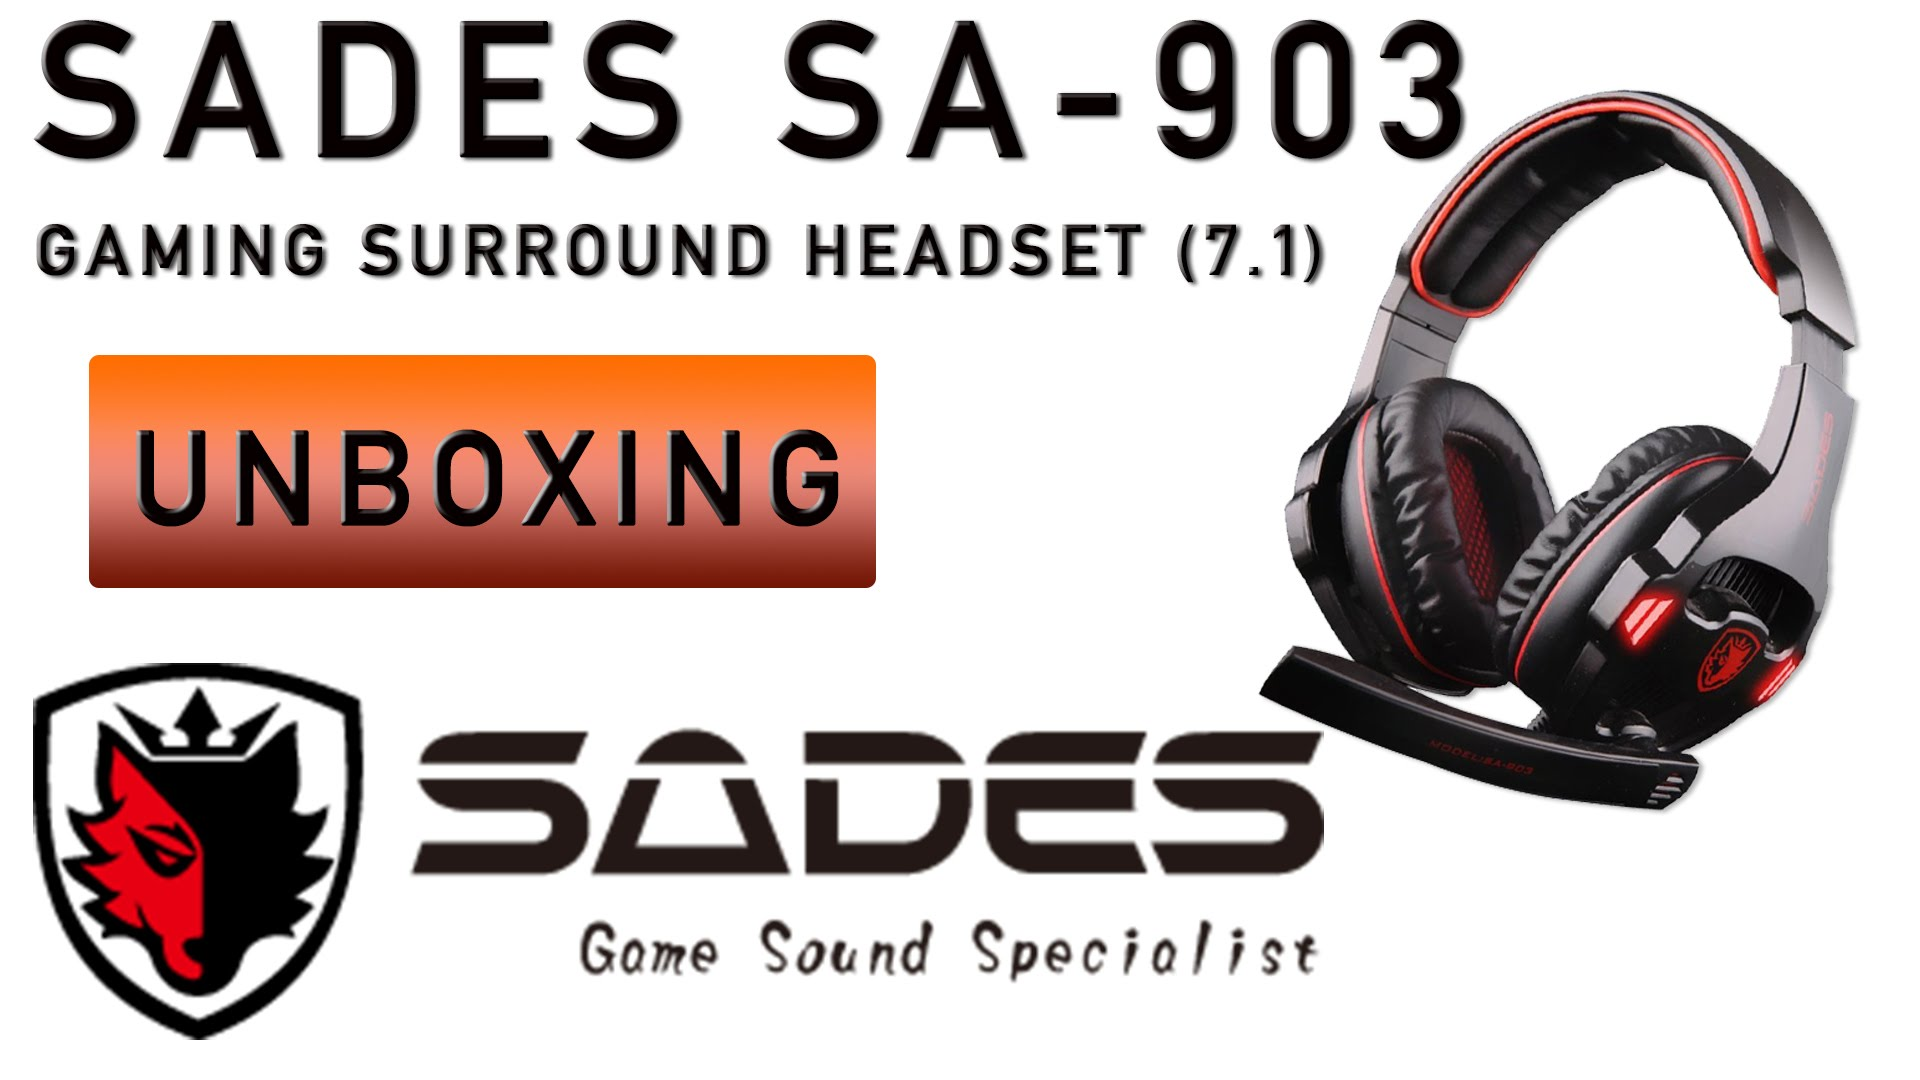 Sades Gaming Headset Driver Windows 10